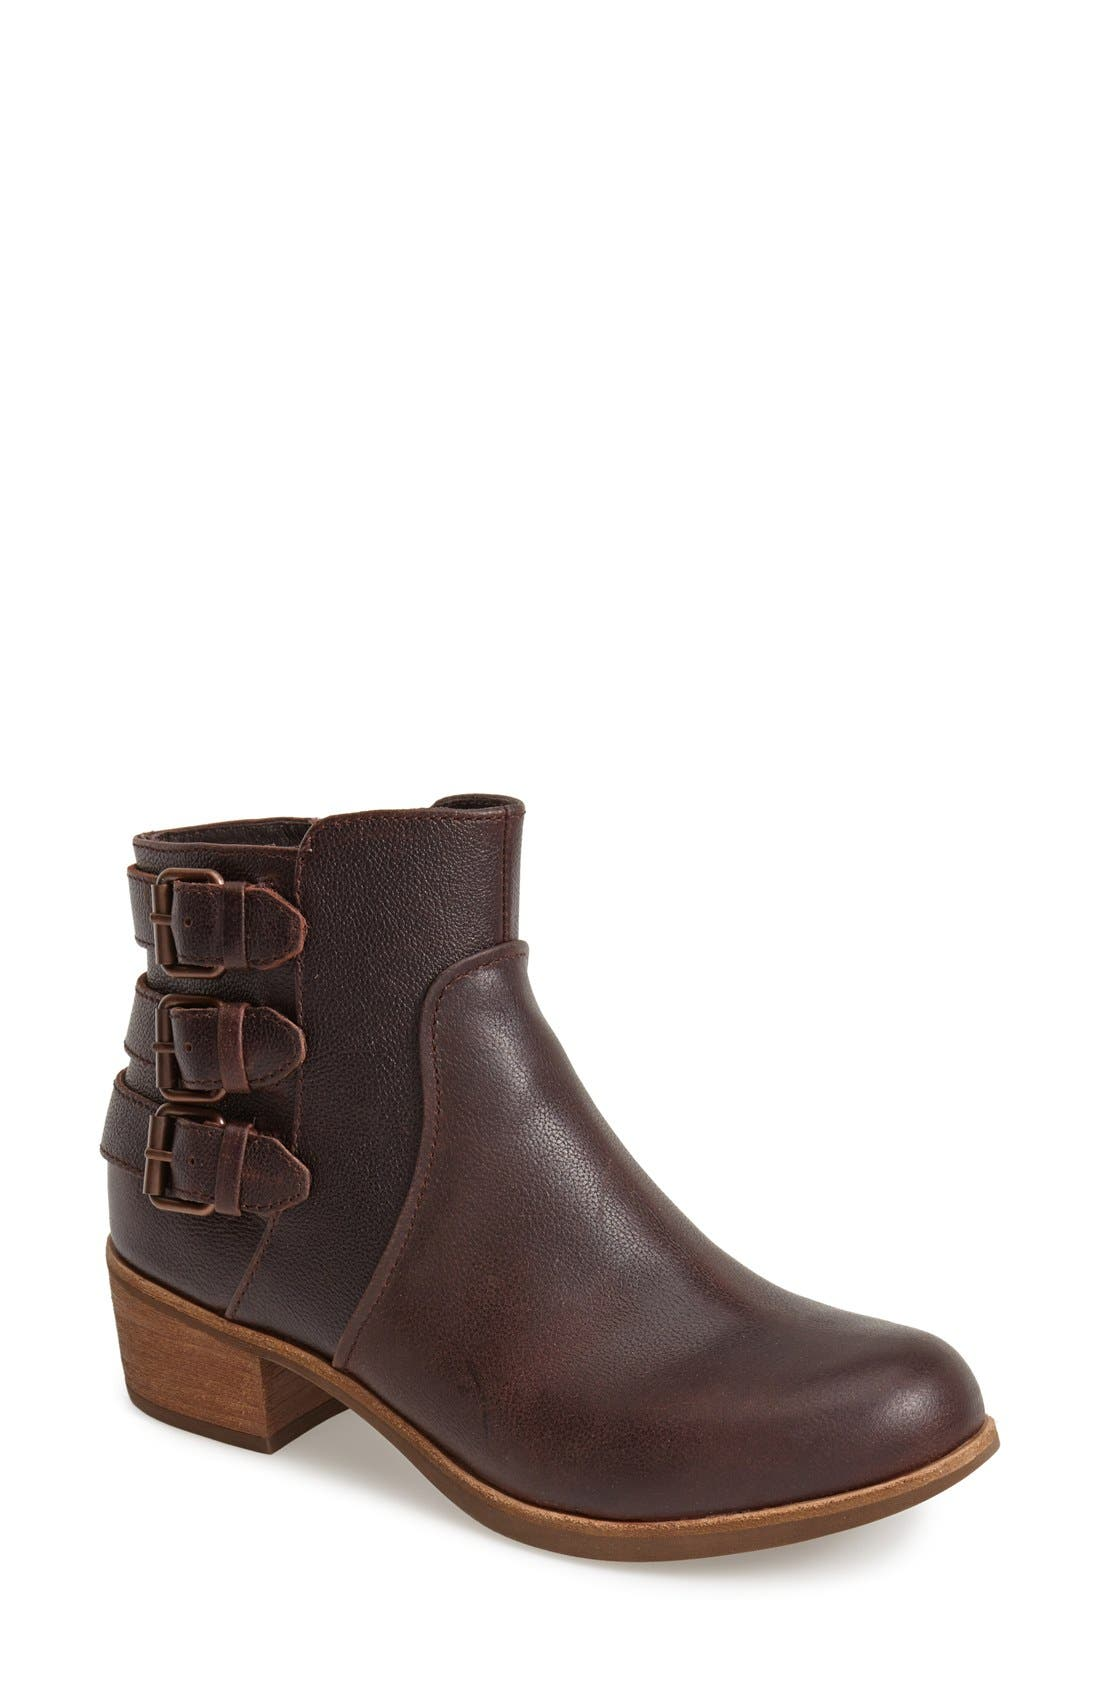 Alternate Image 1 Selected - UGG® Australia 'Volta' Leather Ankle Boot (Women)